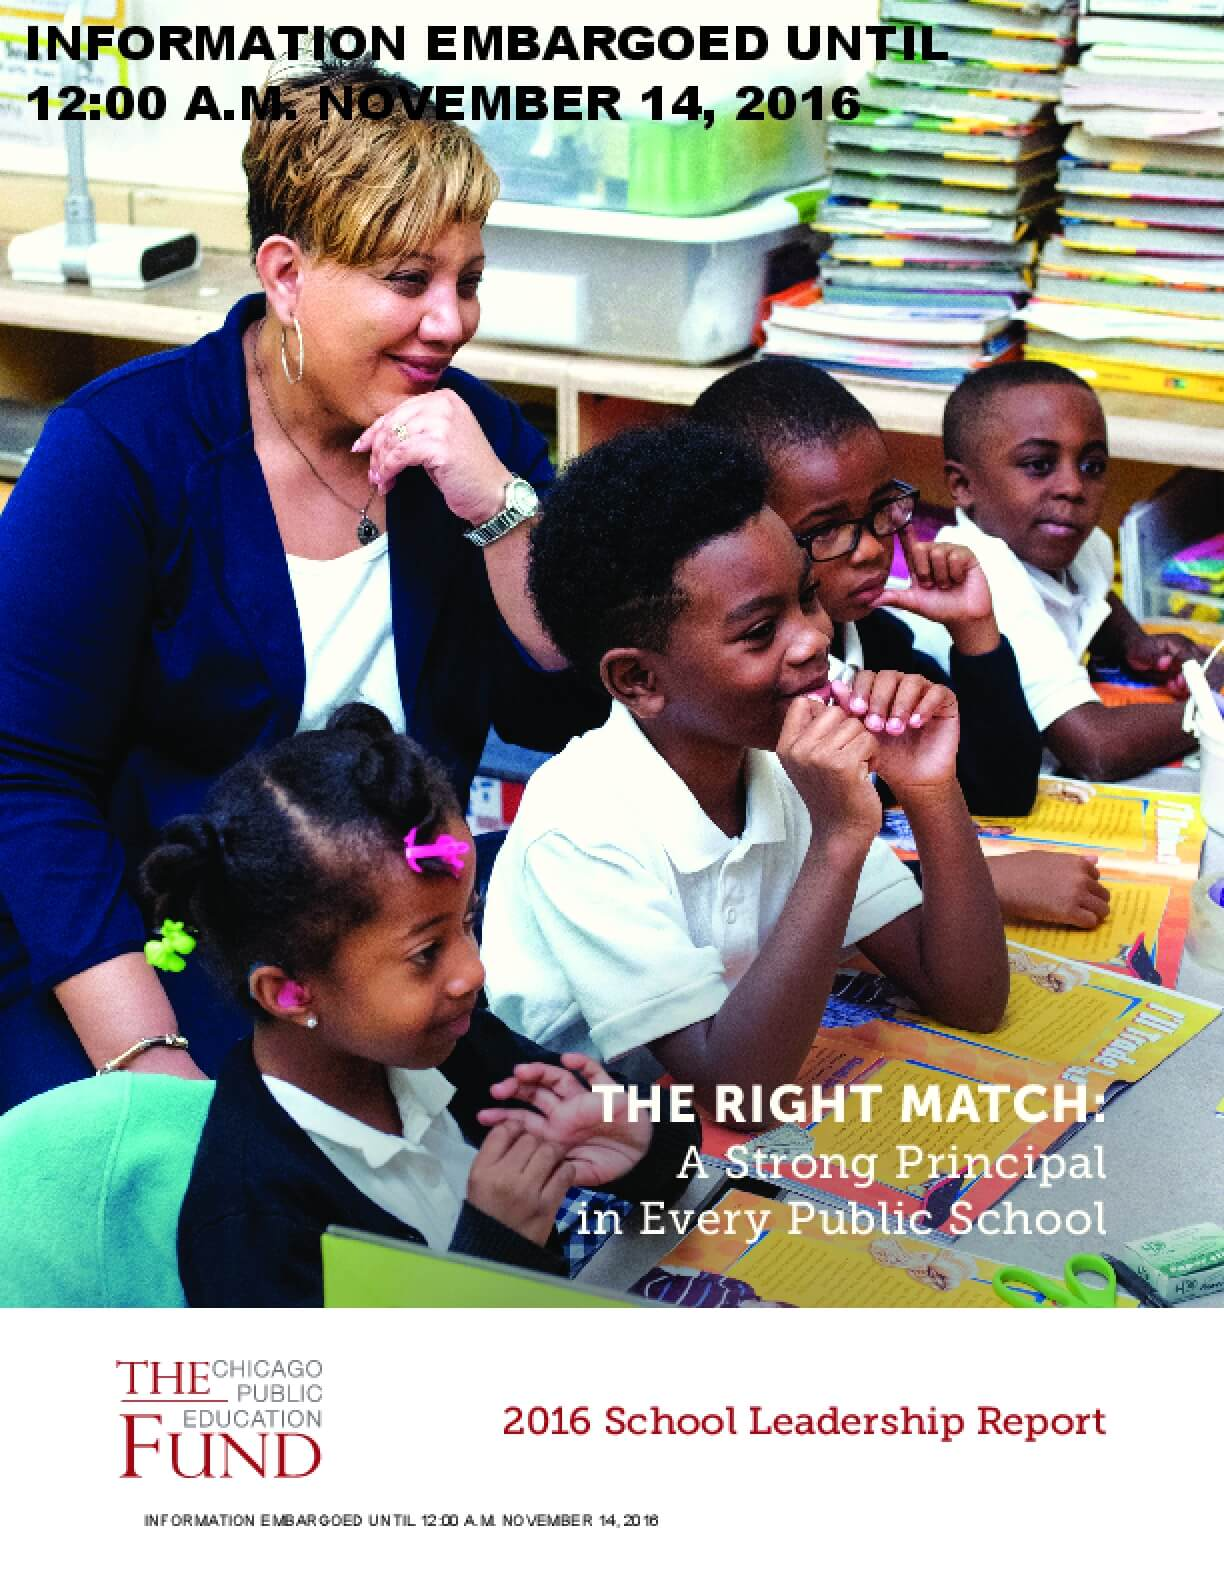 The Right Match: A Strong Principal in Every Public School